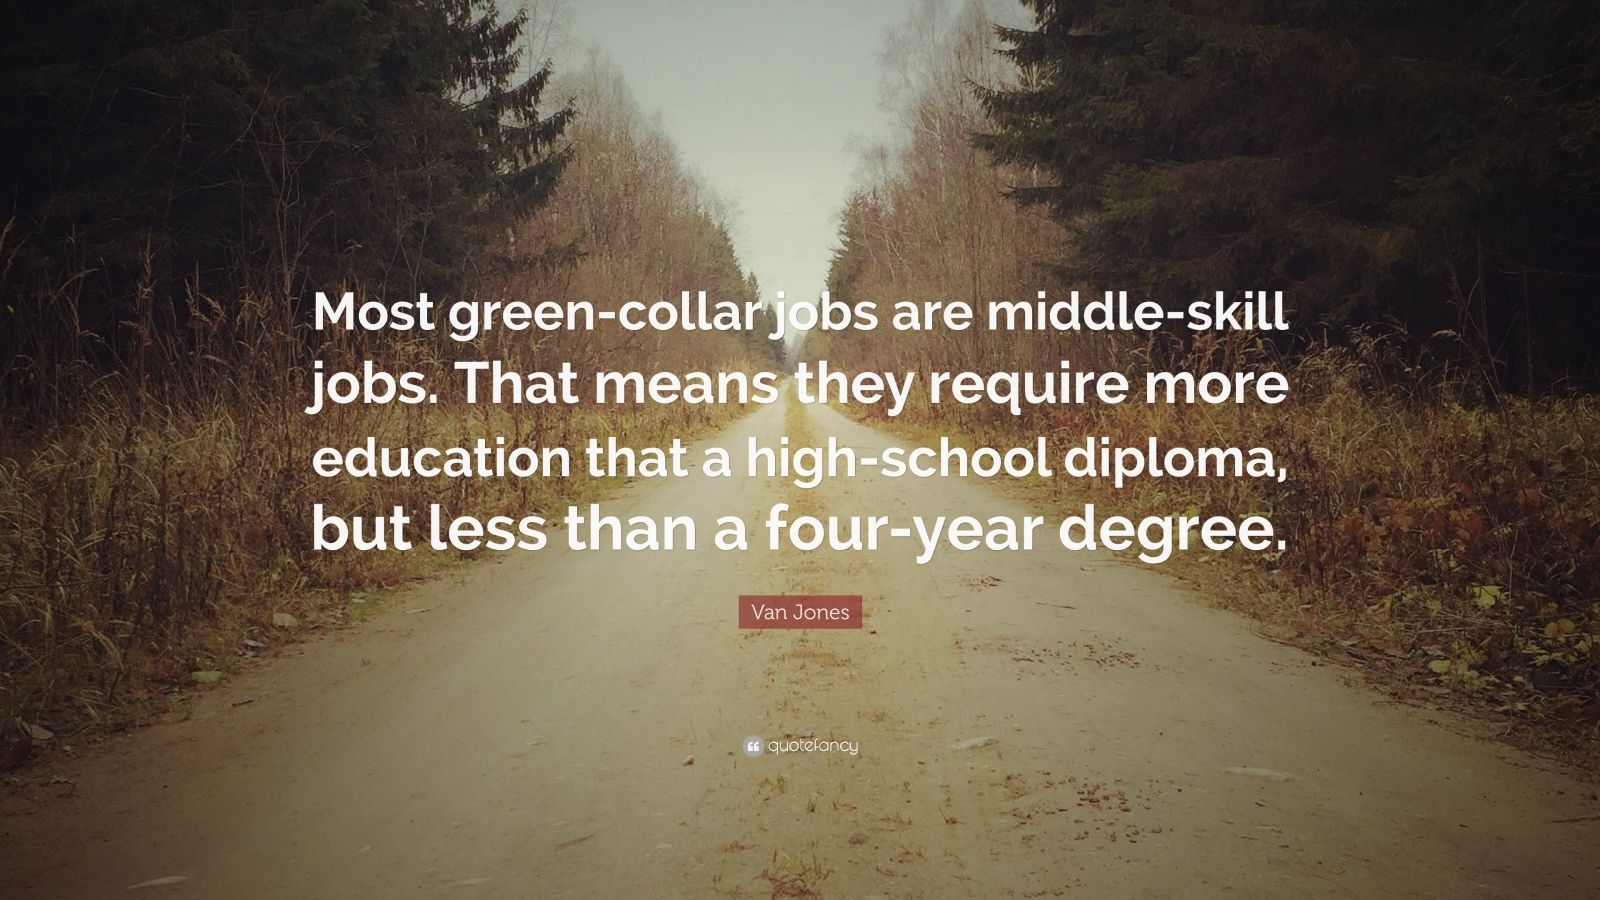 van jones quote most green collar jobs are middle skill jobs van jones quote most green collar jobs are middle skill jobs